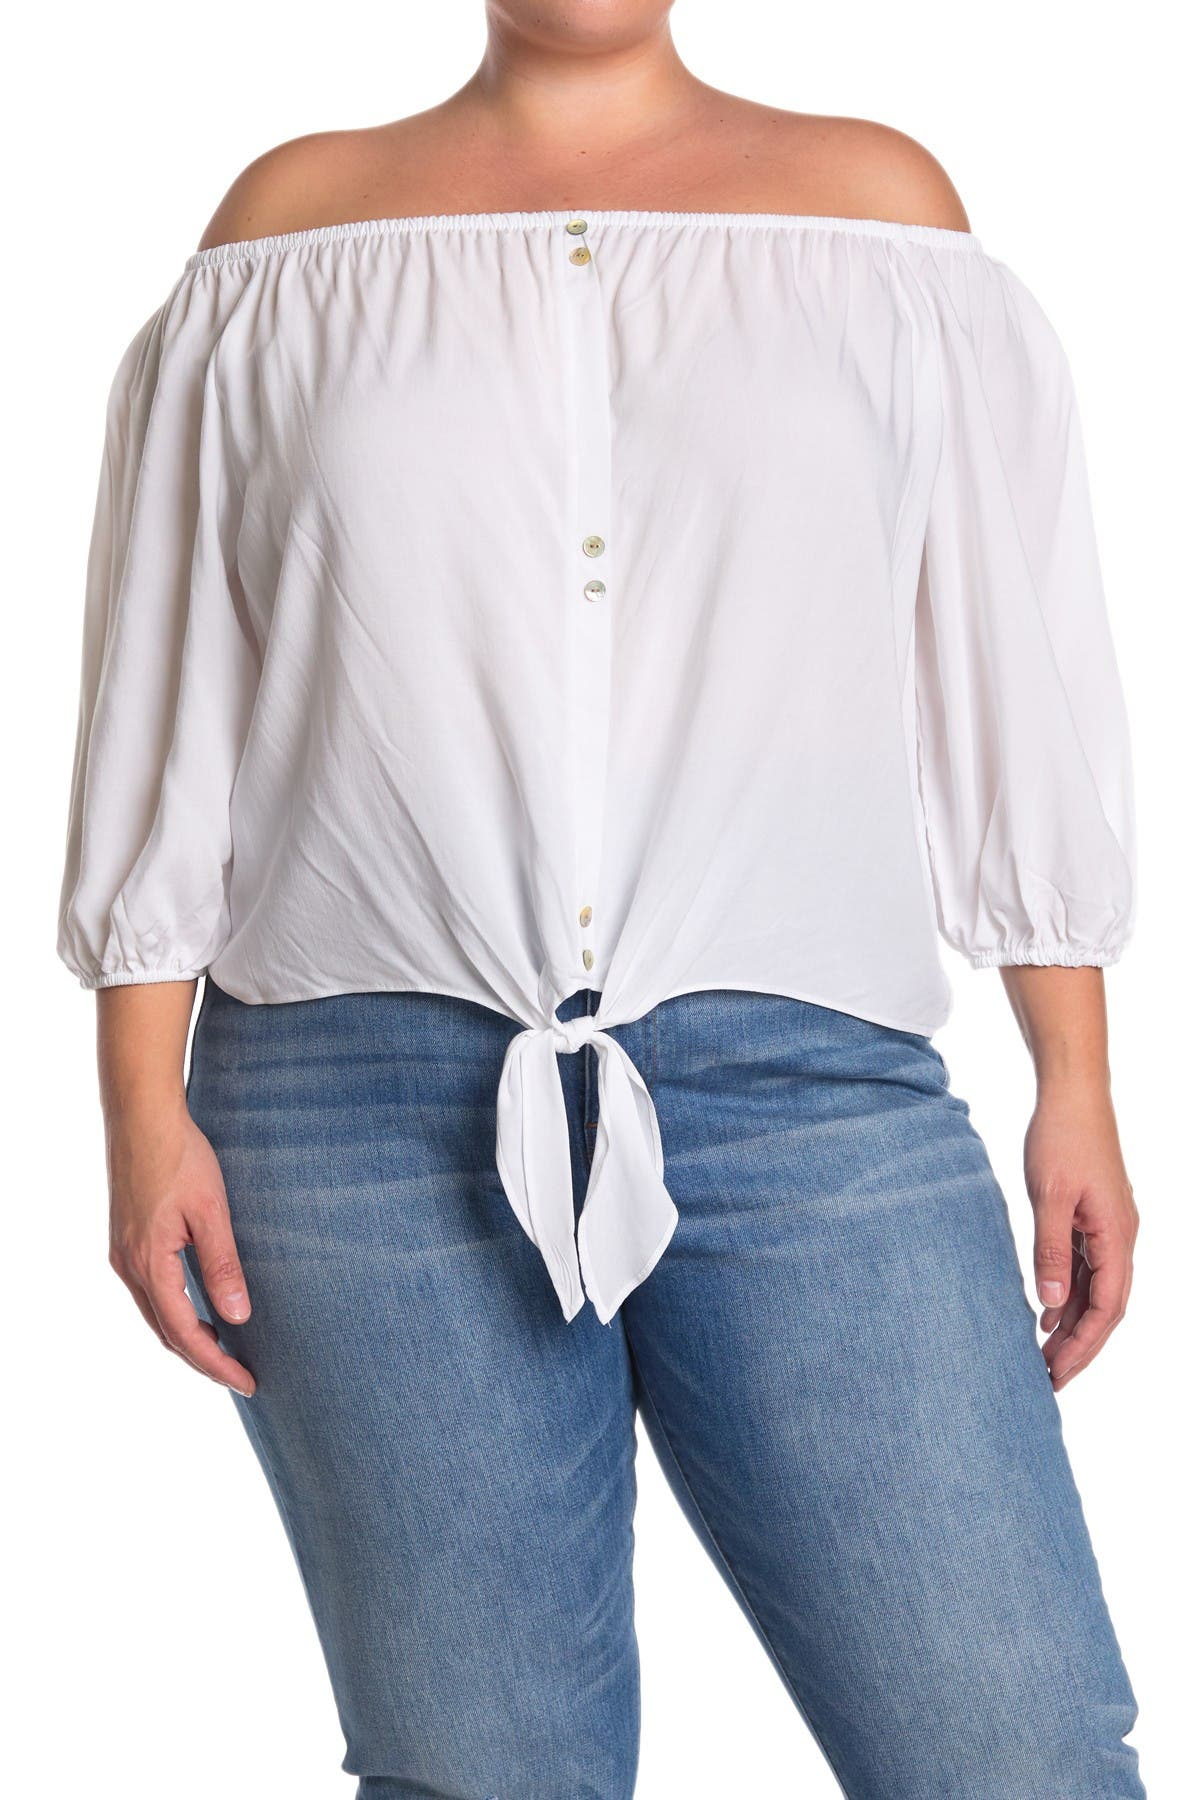 Image of 14TH PLACE Off-The-Shoulder Front Tie Top